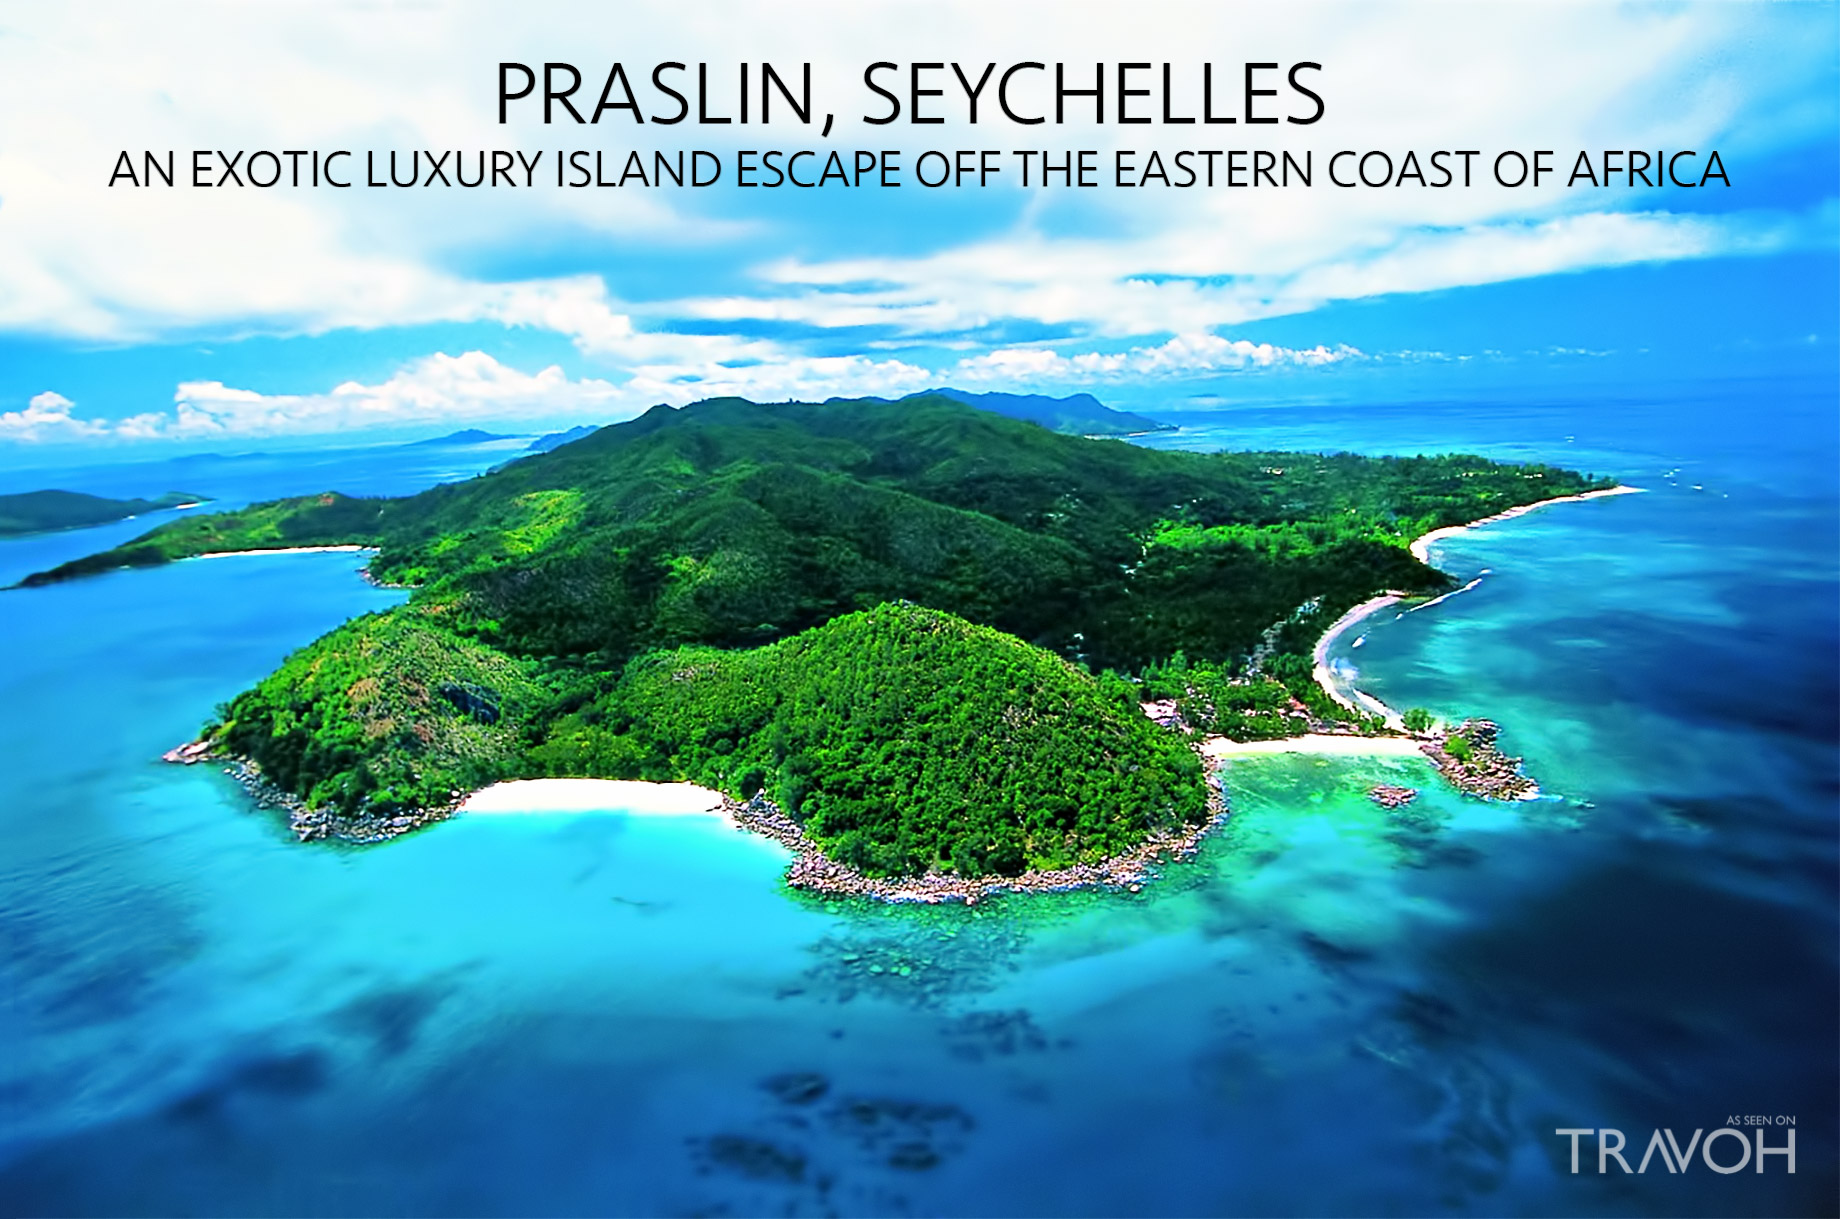 Praslin, Seychelles - An Exotic Luxury Island Escape off the Eastern Coast of Africa